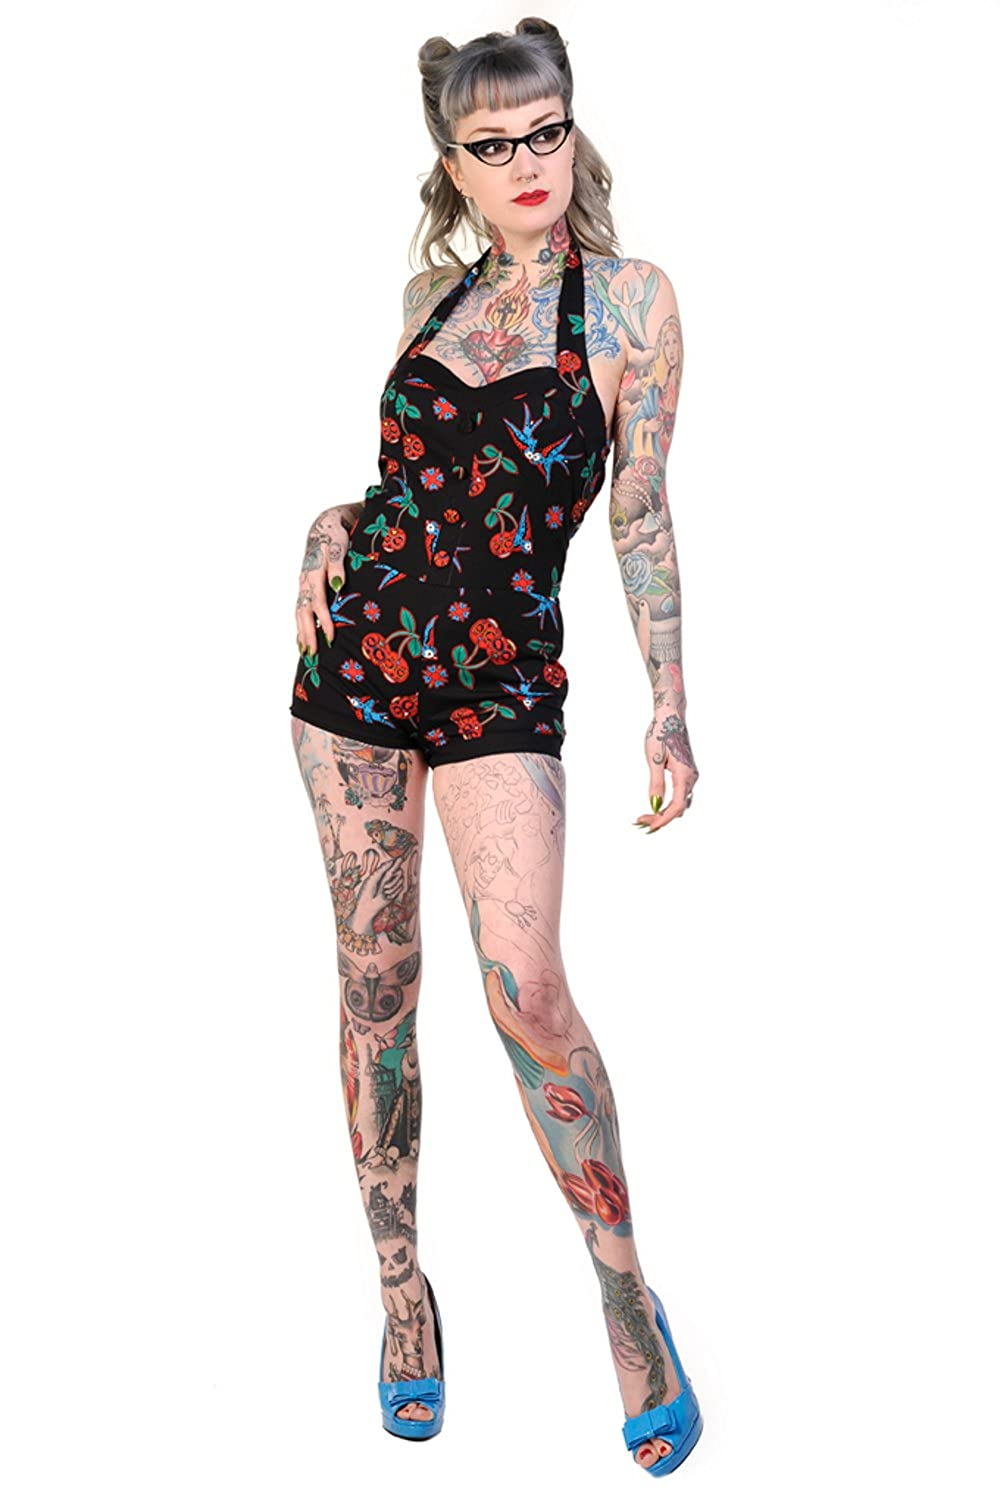 Vintage Rompers and Retro Playsuits Banned Cherry Skulls And Swallows Vintage Playsuit $32.95 AT vintagedancer.com